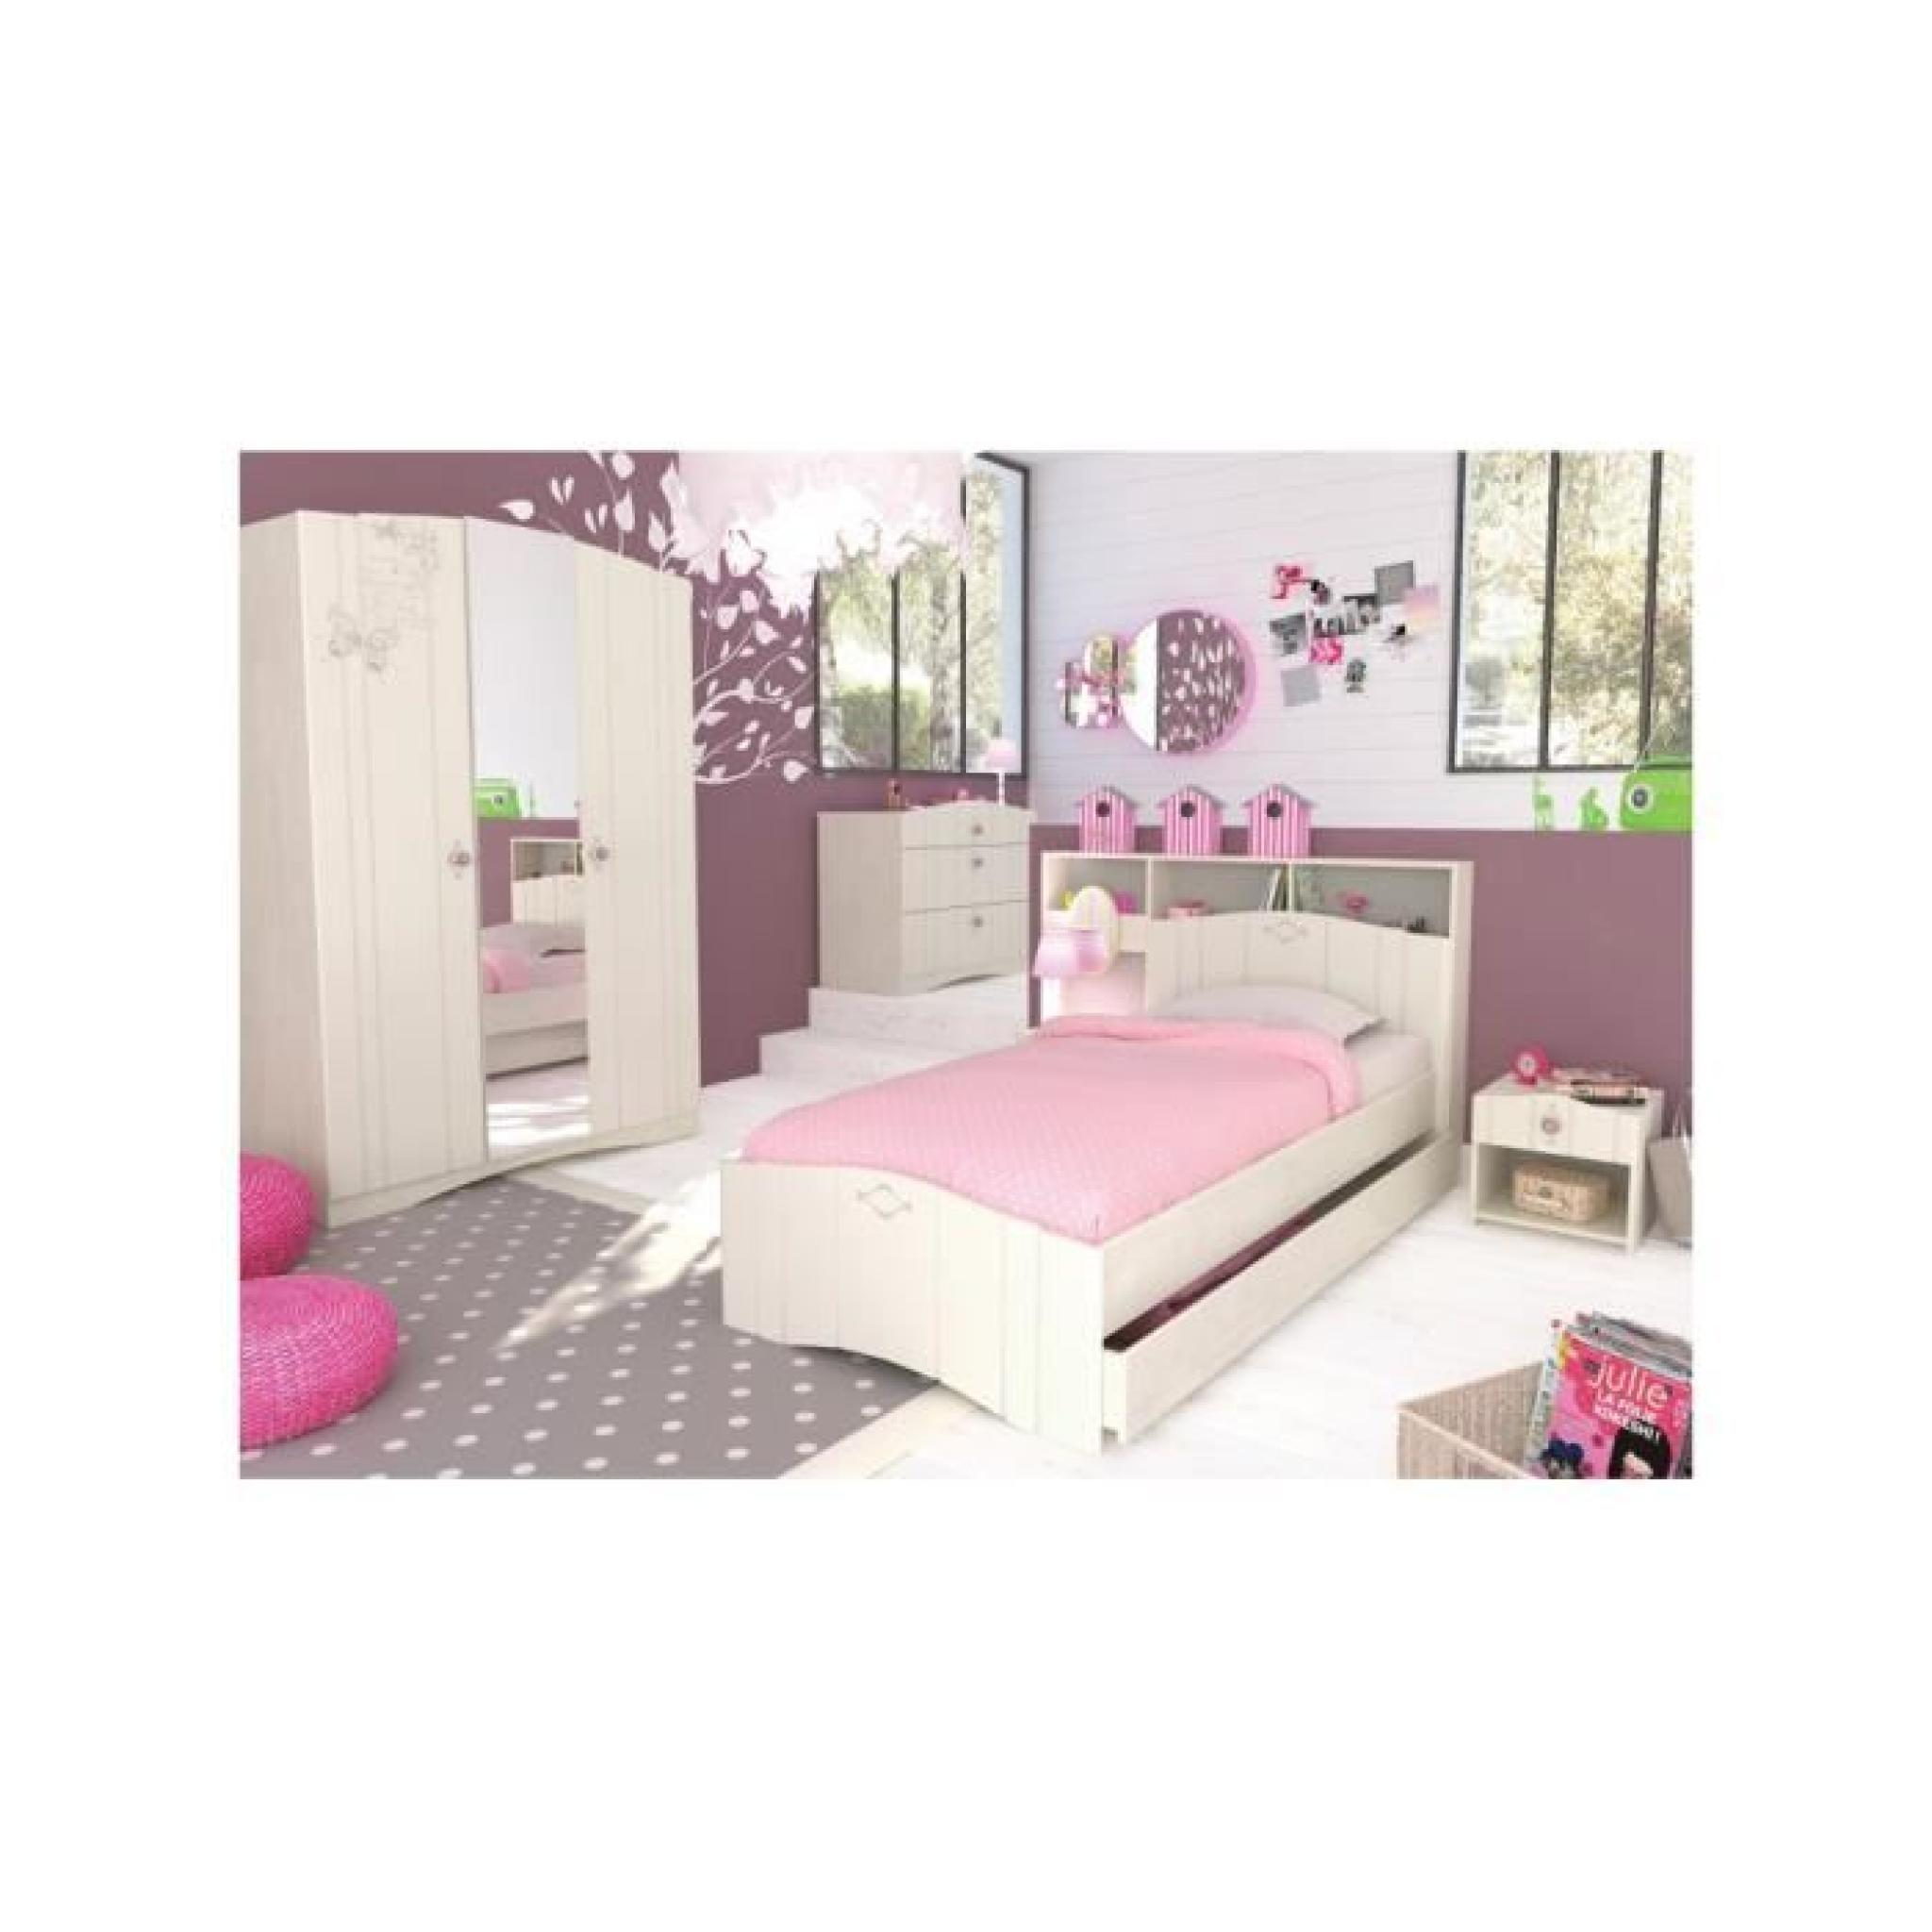 lit pont pas cher lit pont enfant achat vente lit pont enfant pas cher cdiscount with lit pont. Black Bedroom Furniture Sets. Home Design Ideas